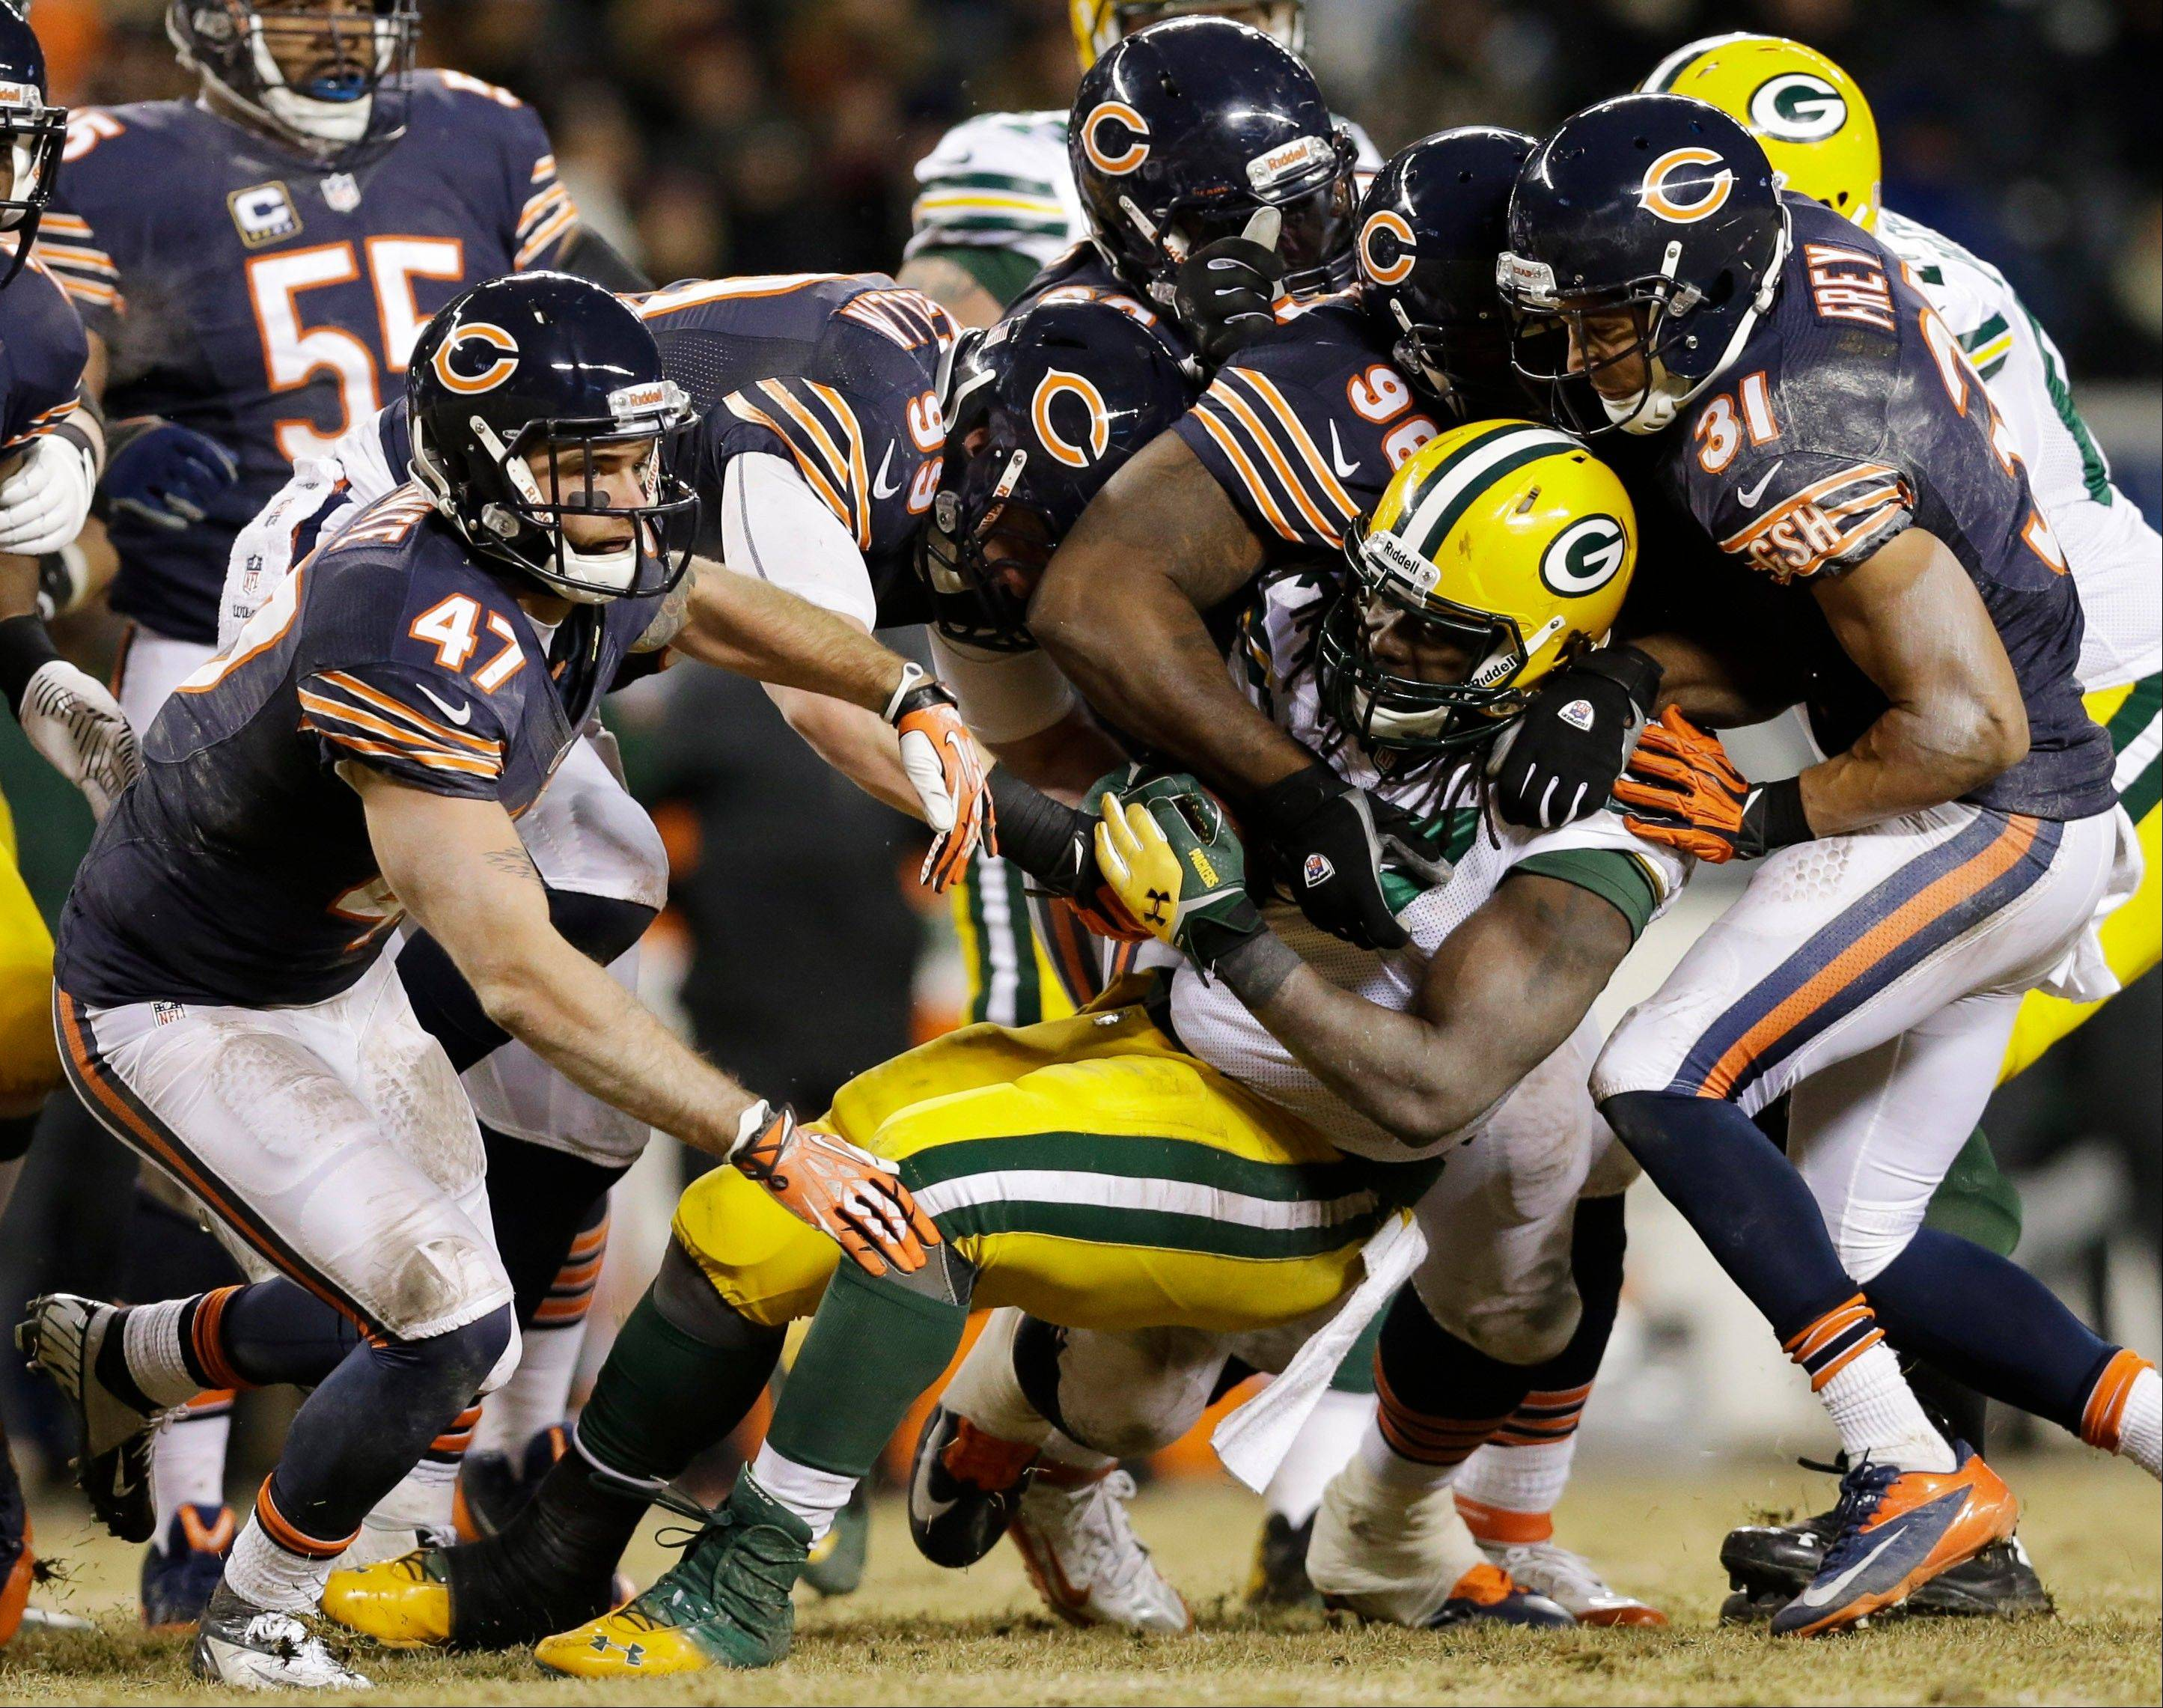 Green Bay Packers running back Eddie Lacy (27) gets tackled by Chicago Bears defenders during the second half.